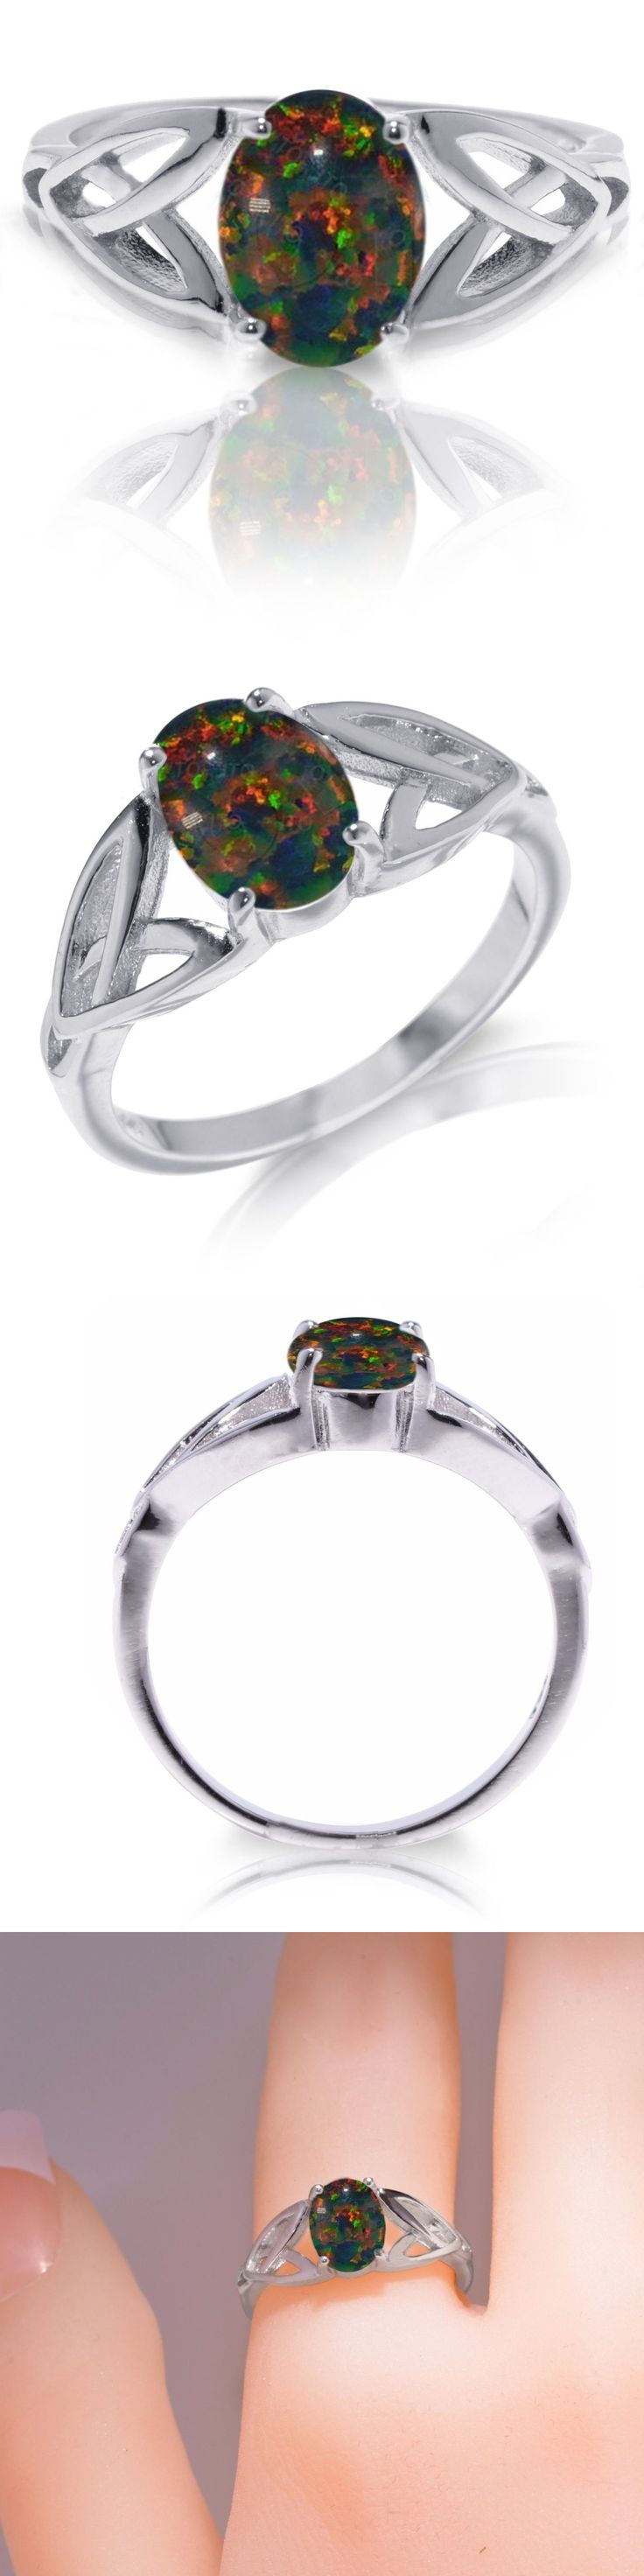 celtic sets alsayegh gallery picture beautiful photography wedding of gaelic engagement bands matching awesome ring rings